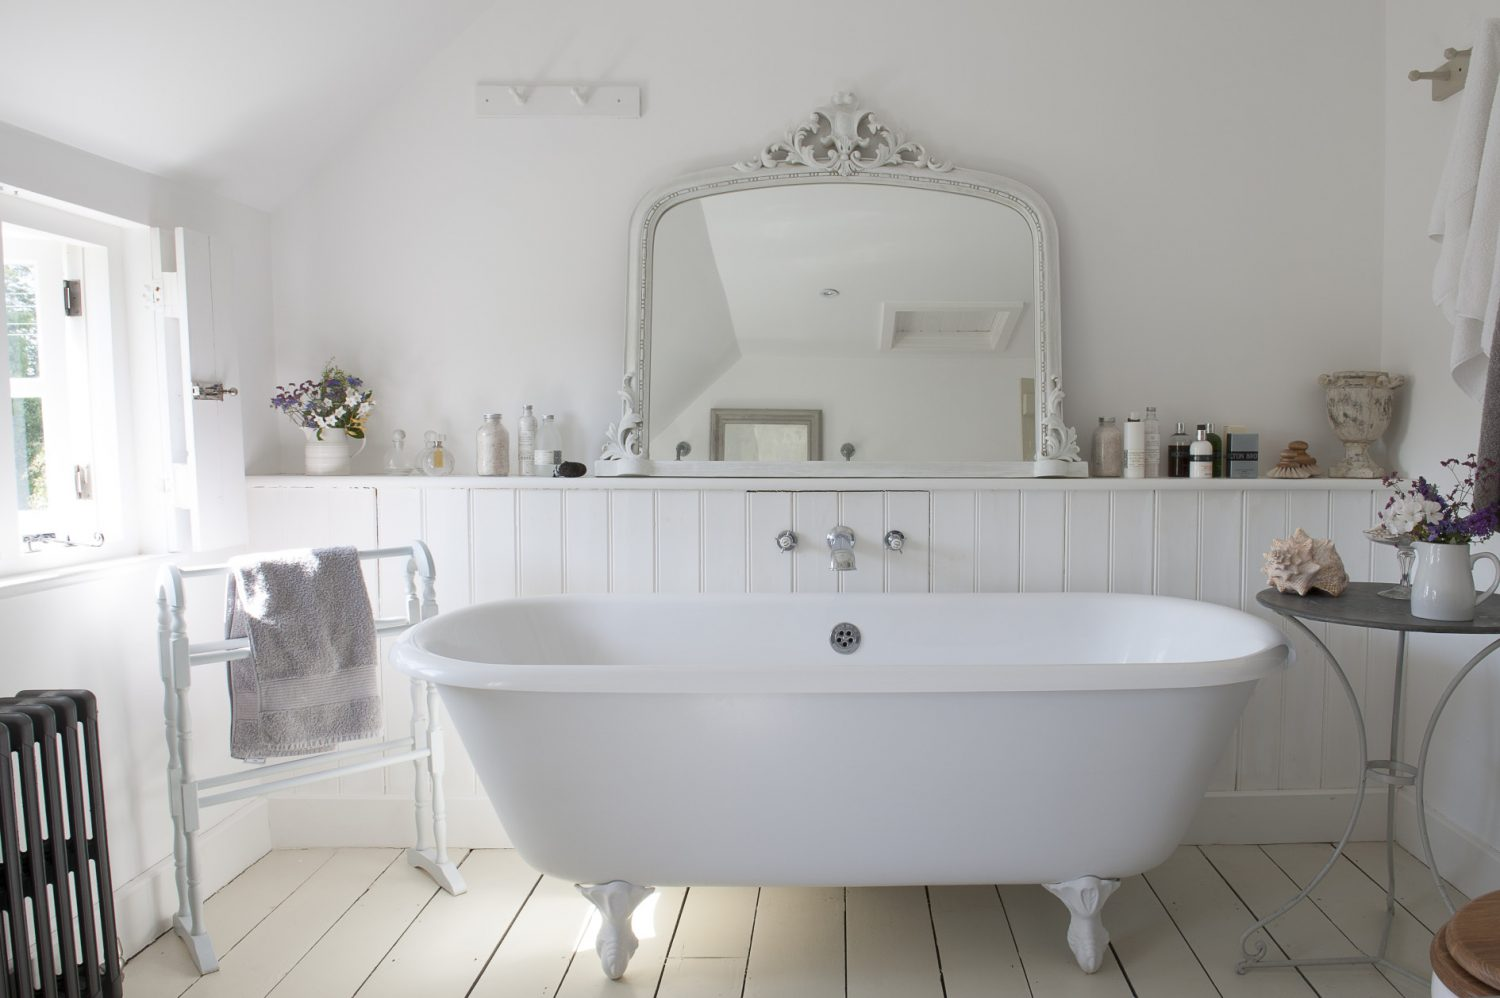 Melanie's bath is made from an amalgam of a self-reinforced cast resin and mineral mixture which means that it retains heat, but is under half the weight of an original cast-iron bath allowing it to perch safely on the first floor